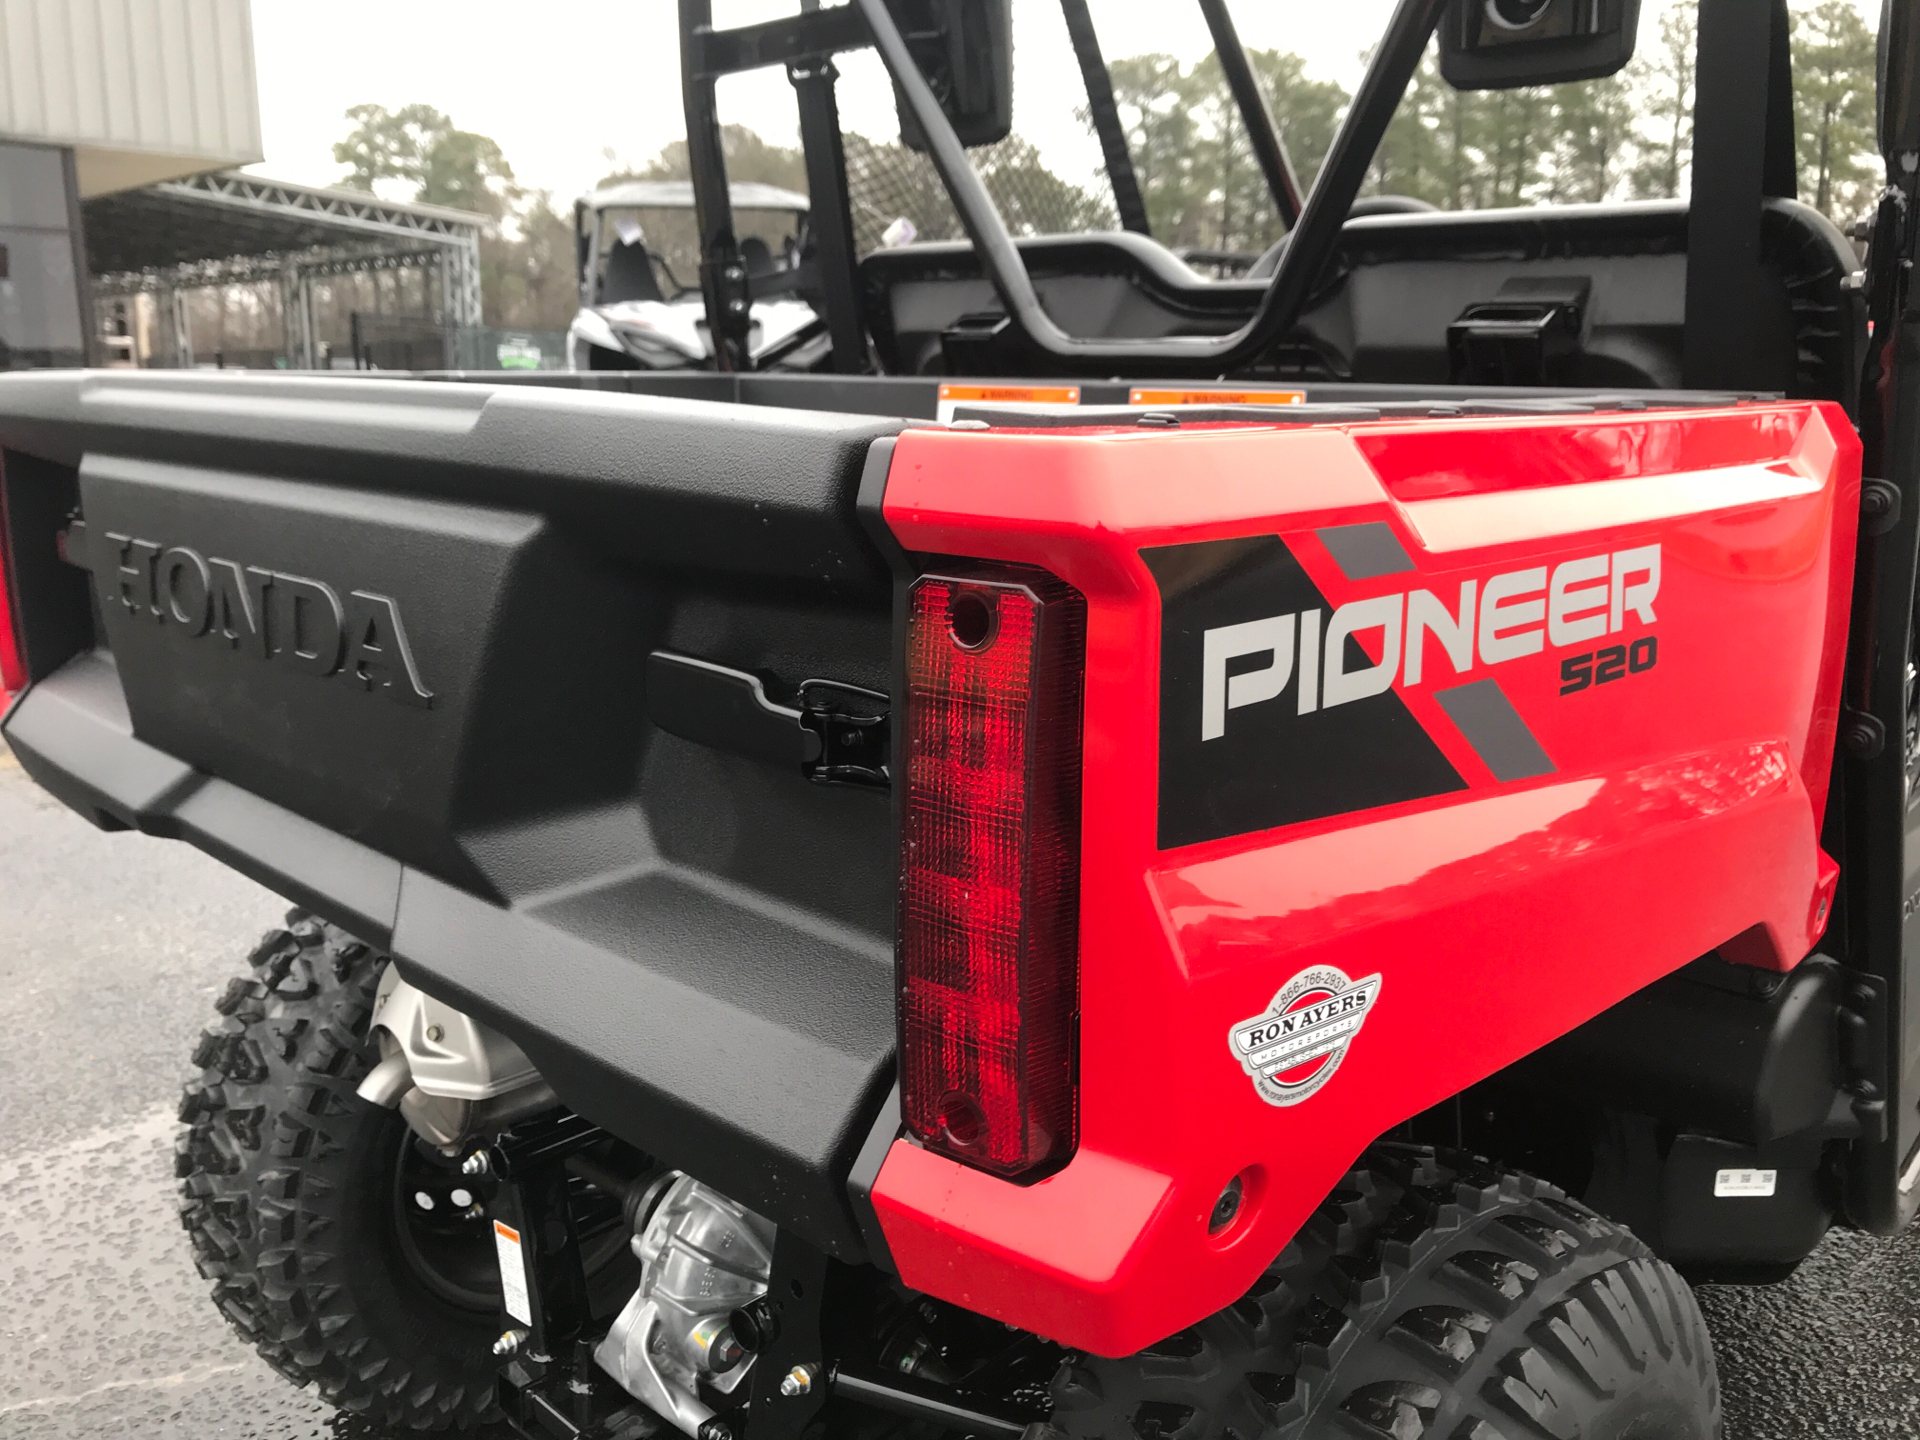 2021 Honda Pioneer 520 in Greenville, North Carolina - Photo 12